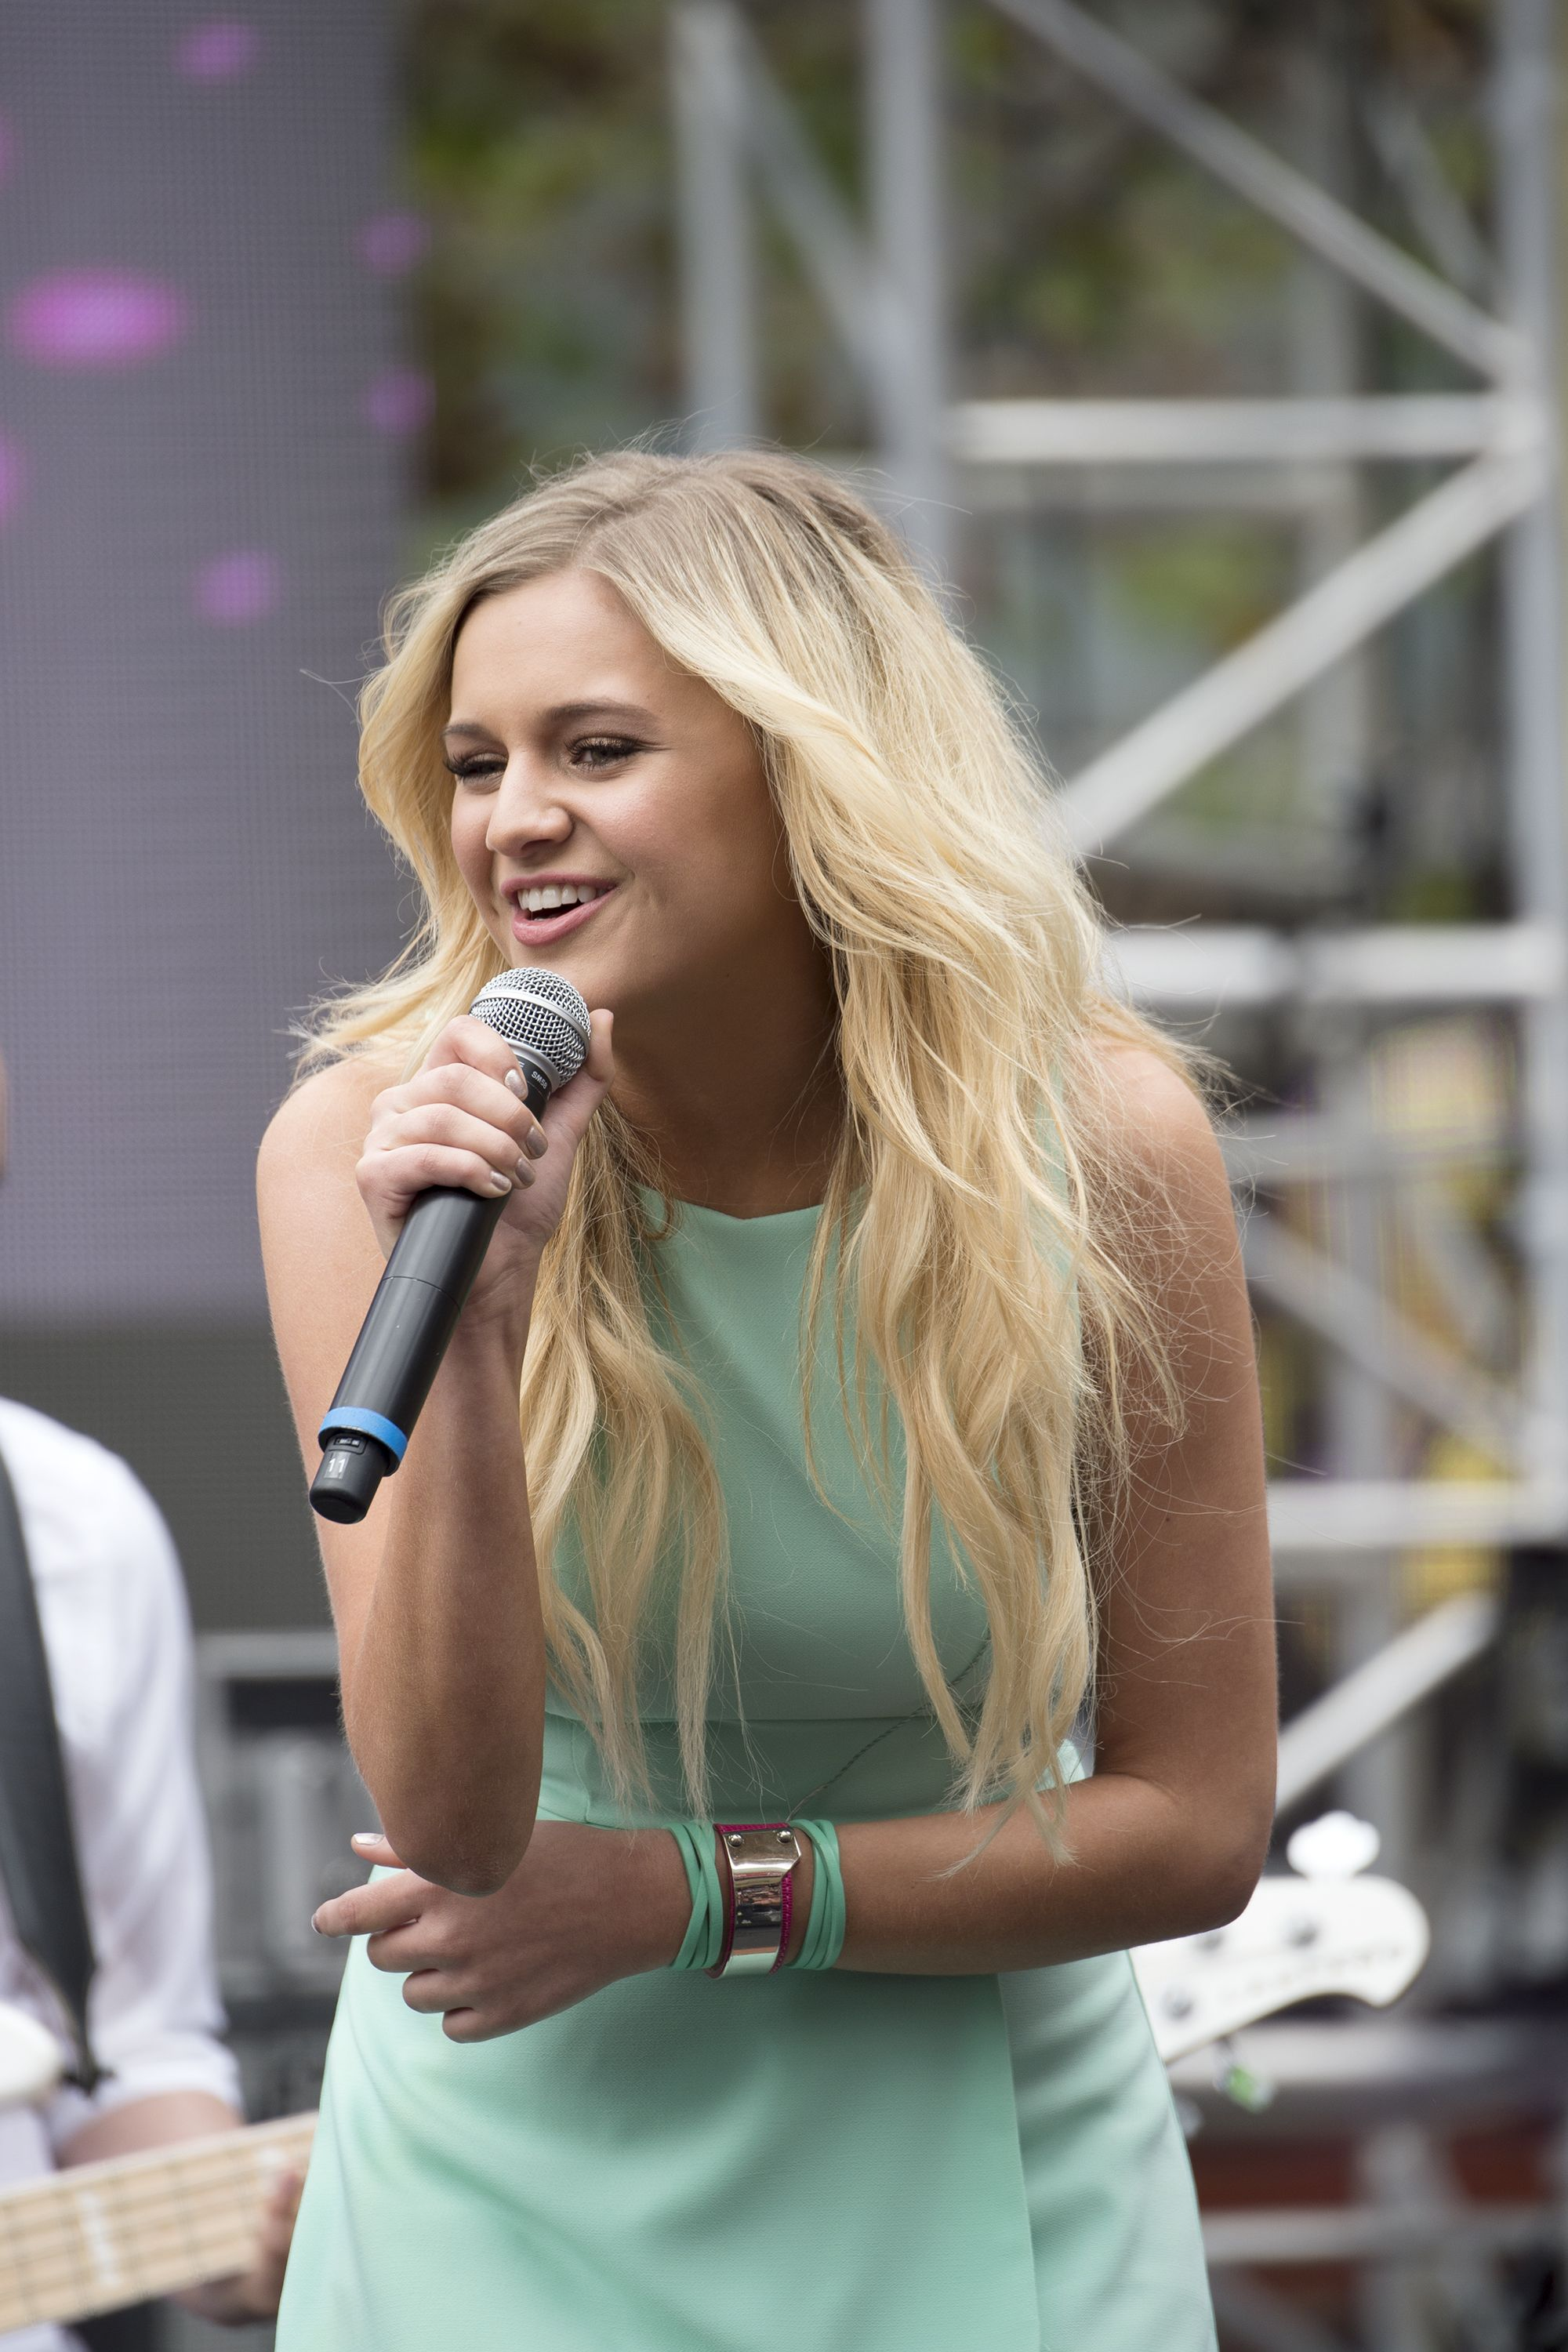 Superb Pin By Stormin Country On Kelsea Ballerini Pinterest Hairstyle Inspiration Daily Dogsangcom